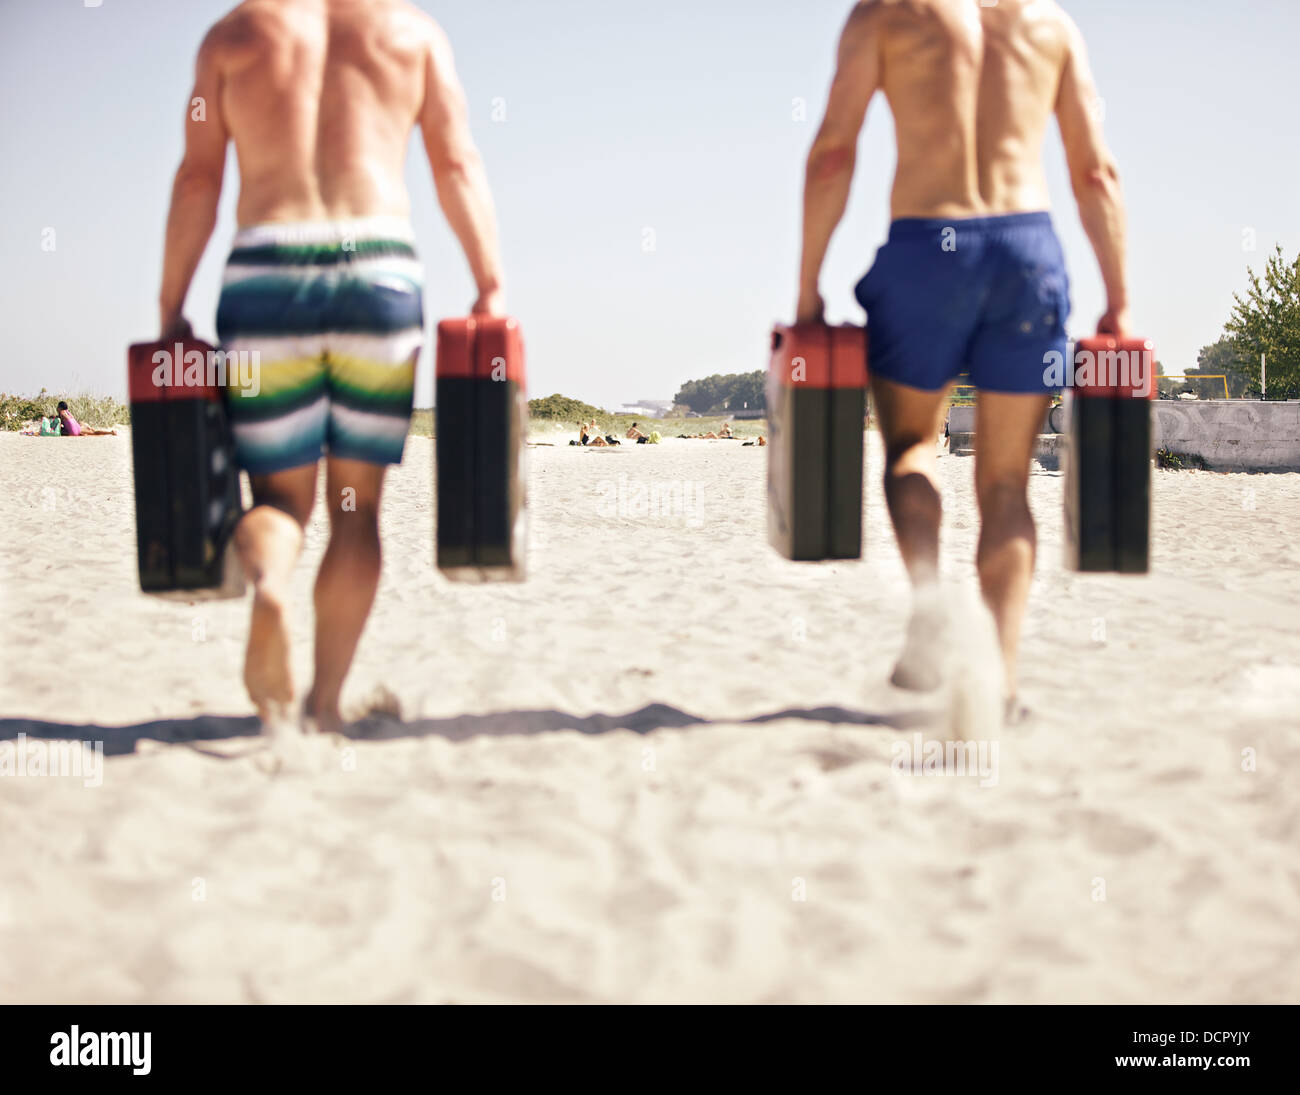 Two men running with jerry cans as a part of crossfit games - Stock Image